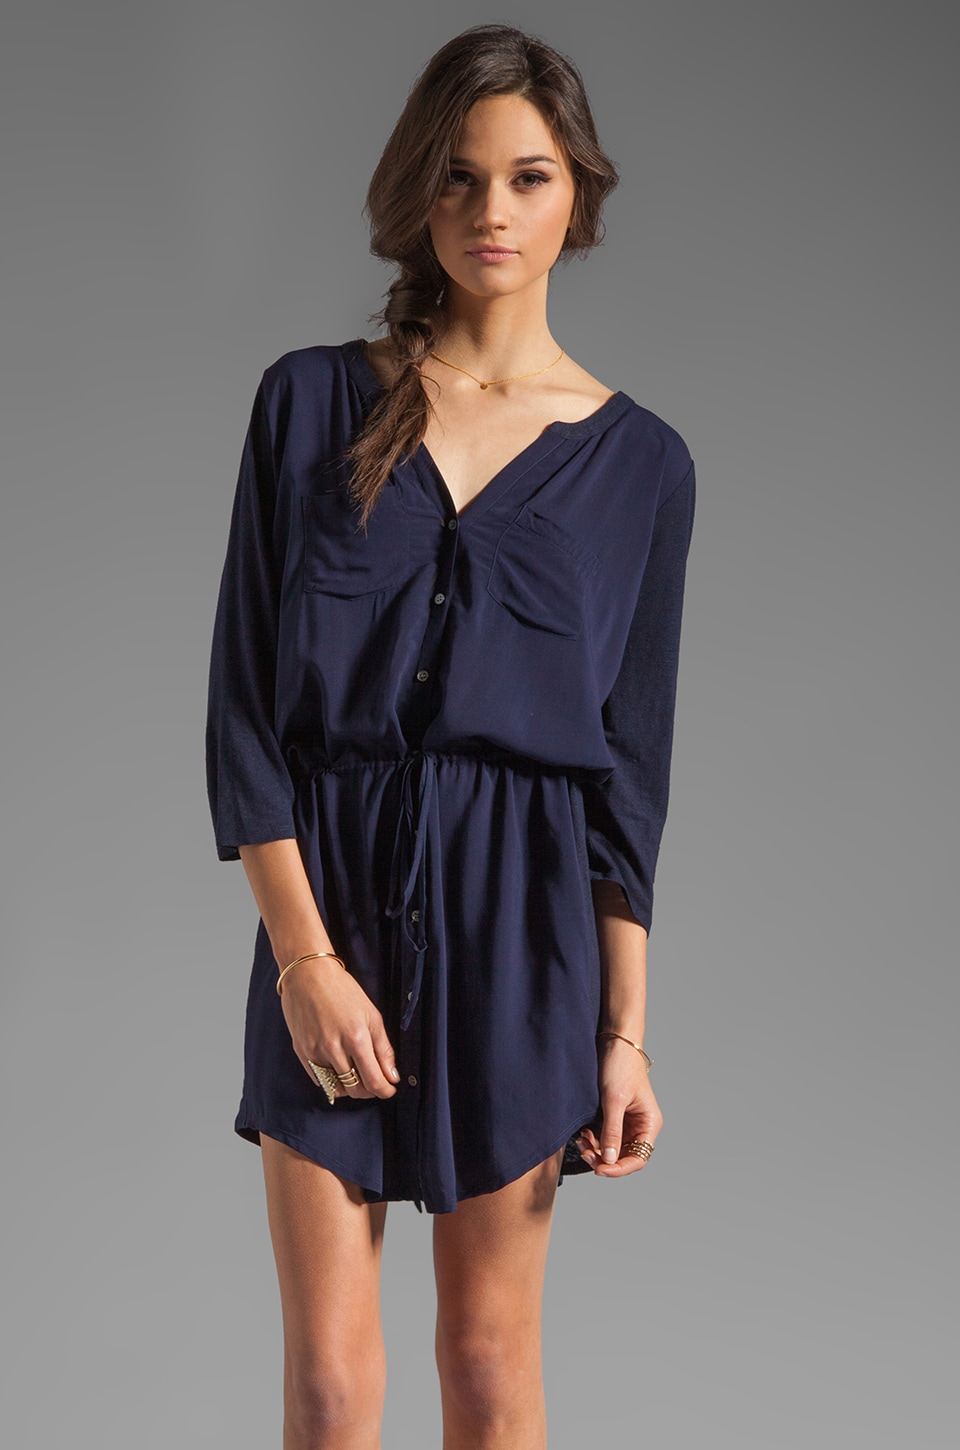 Soft Joie Dayle Linen Dress in Peacoat